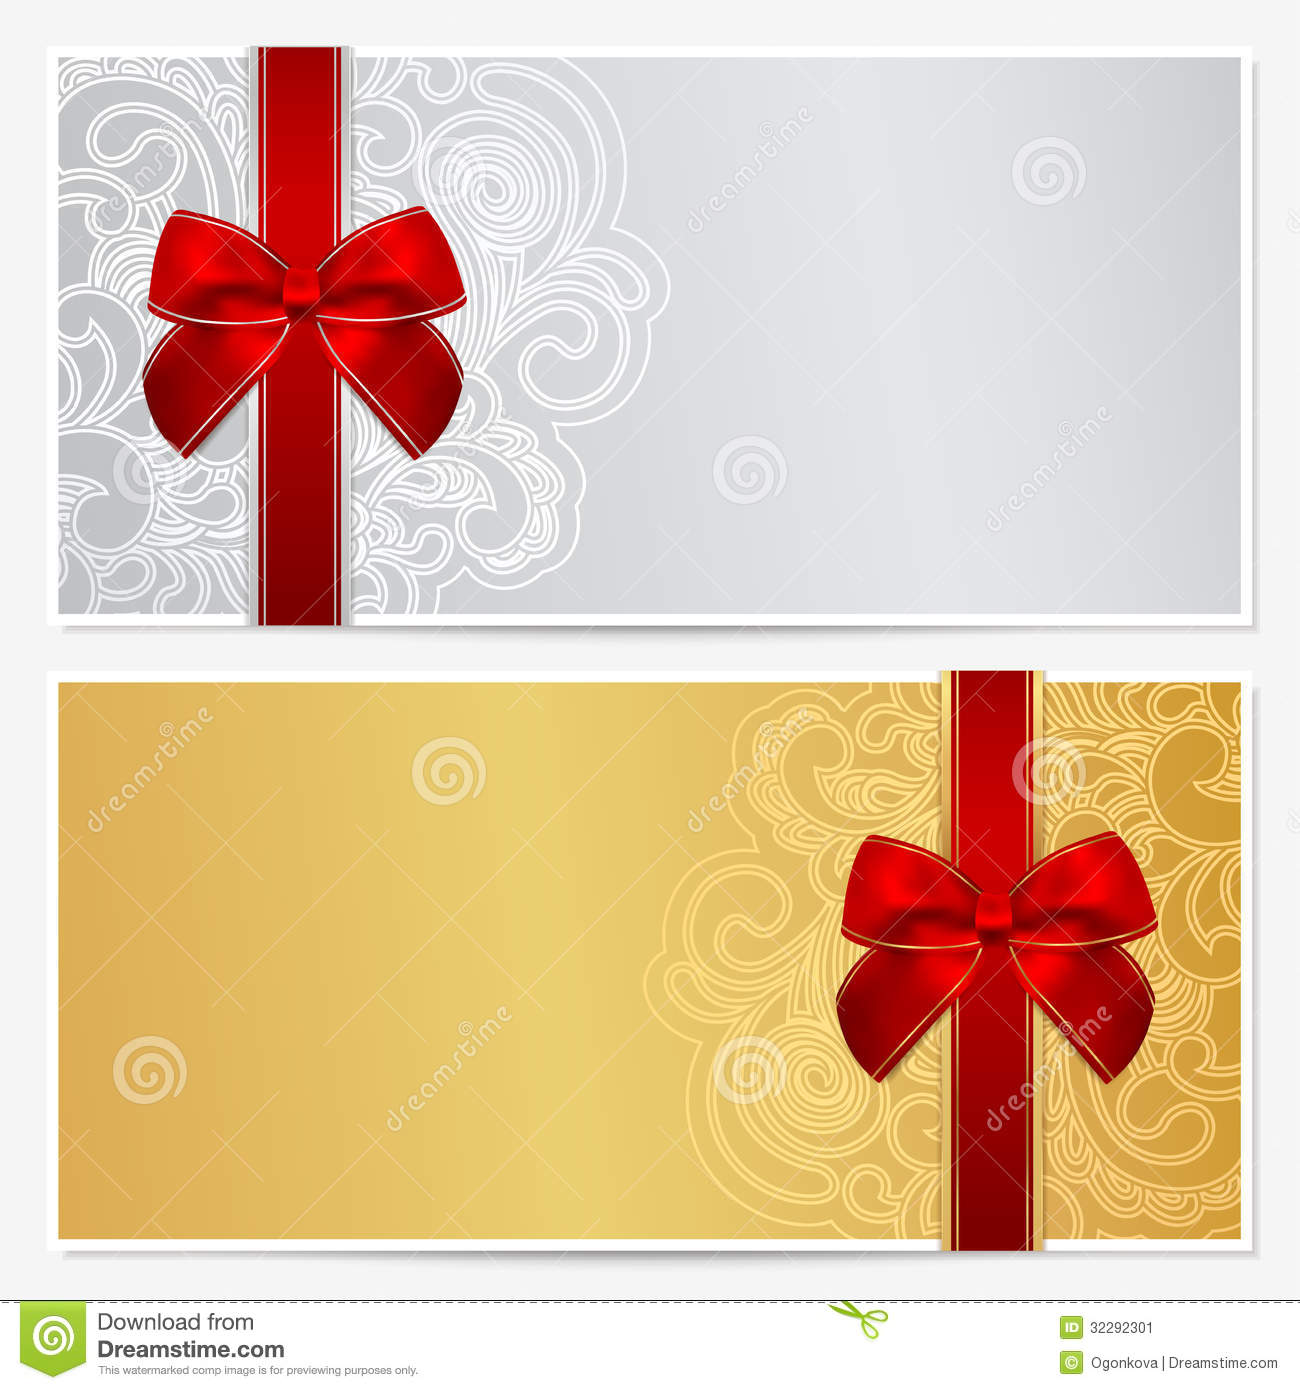 gift certificate template clipart clipart kid voucher gift certificate coupon template border frame bow